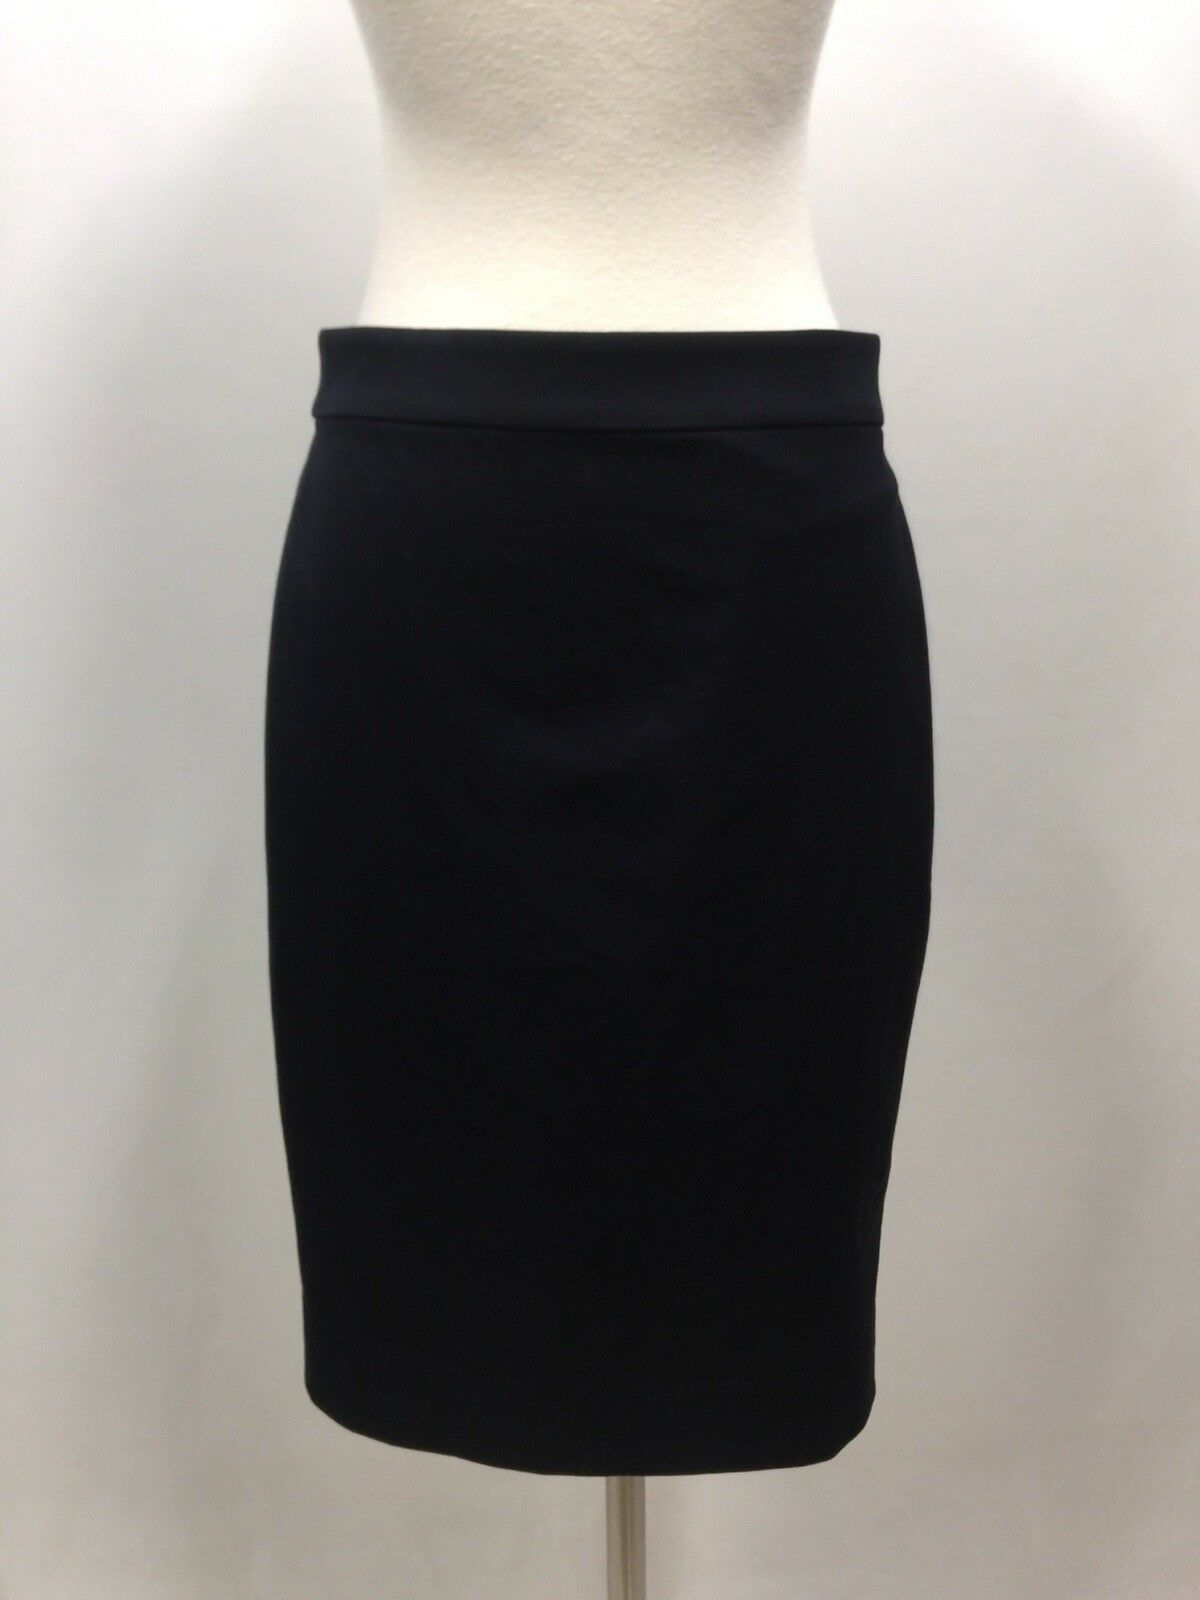 NEW JCrew No 2 Pencil Skirt in Bi-Stretch Cotton Size 0 Navy bluee G0823 suiting